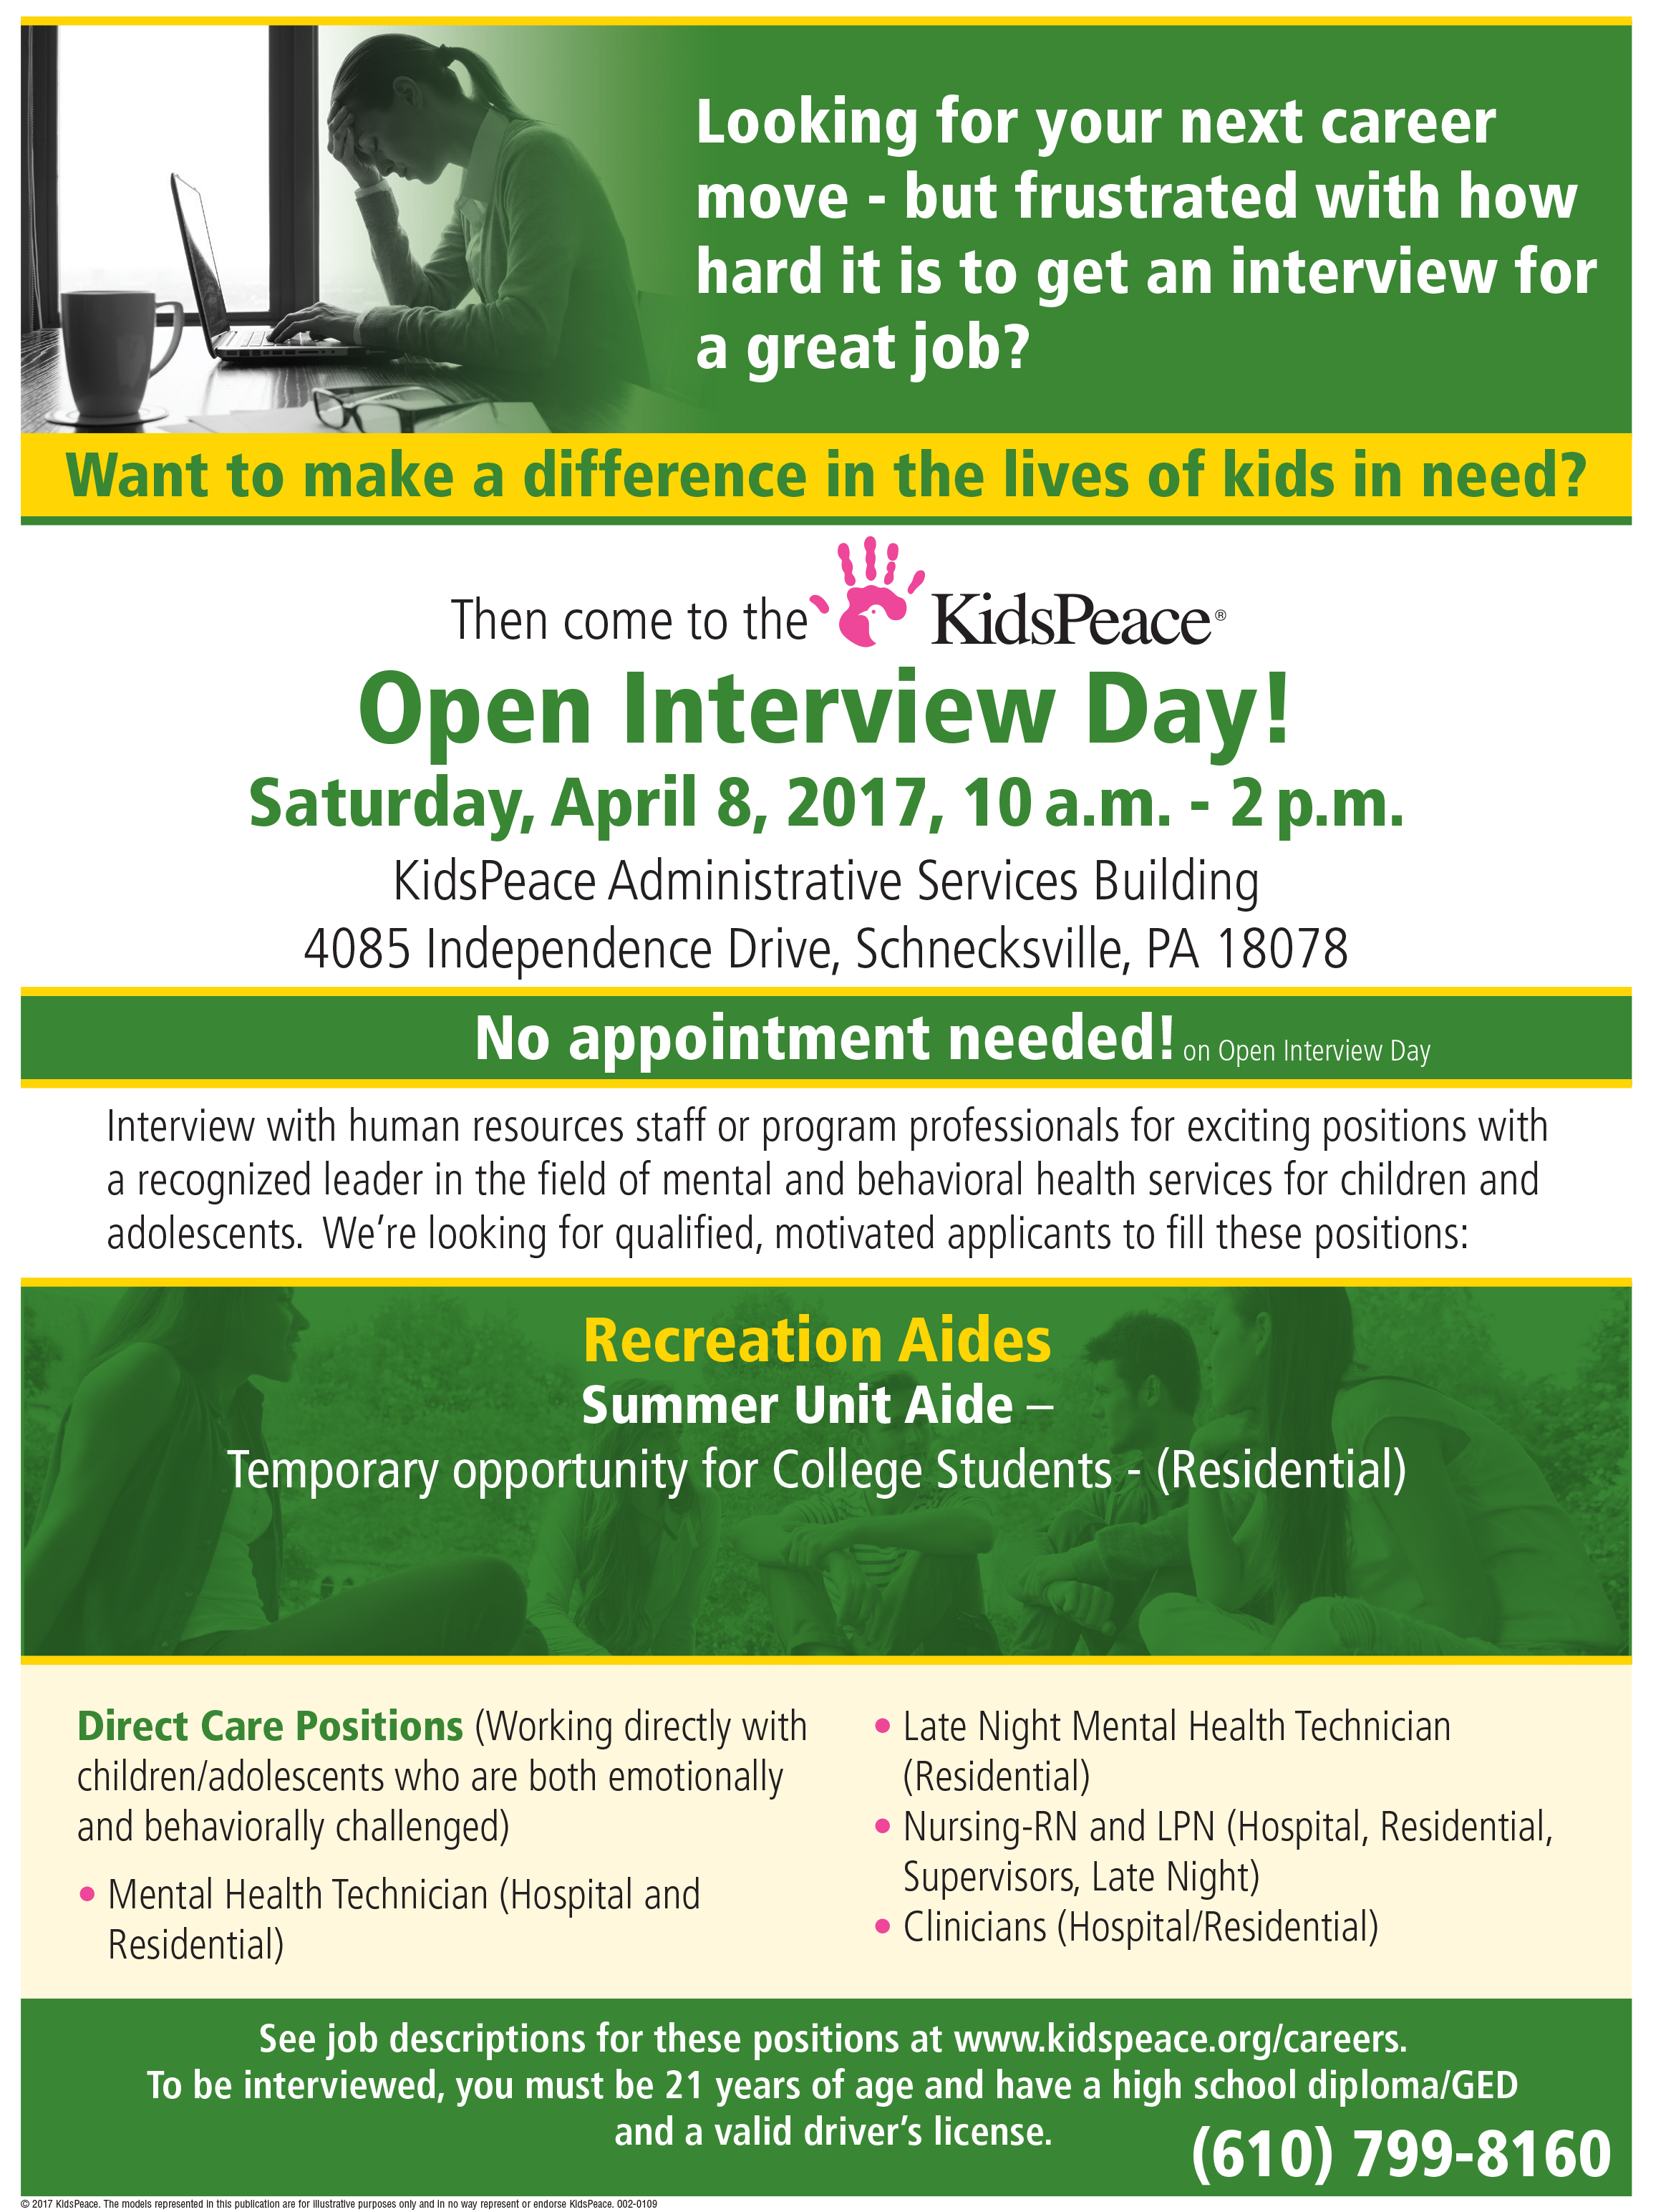 open interview day kidspeace search